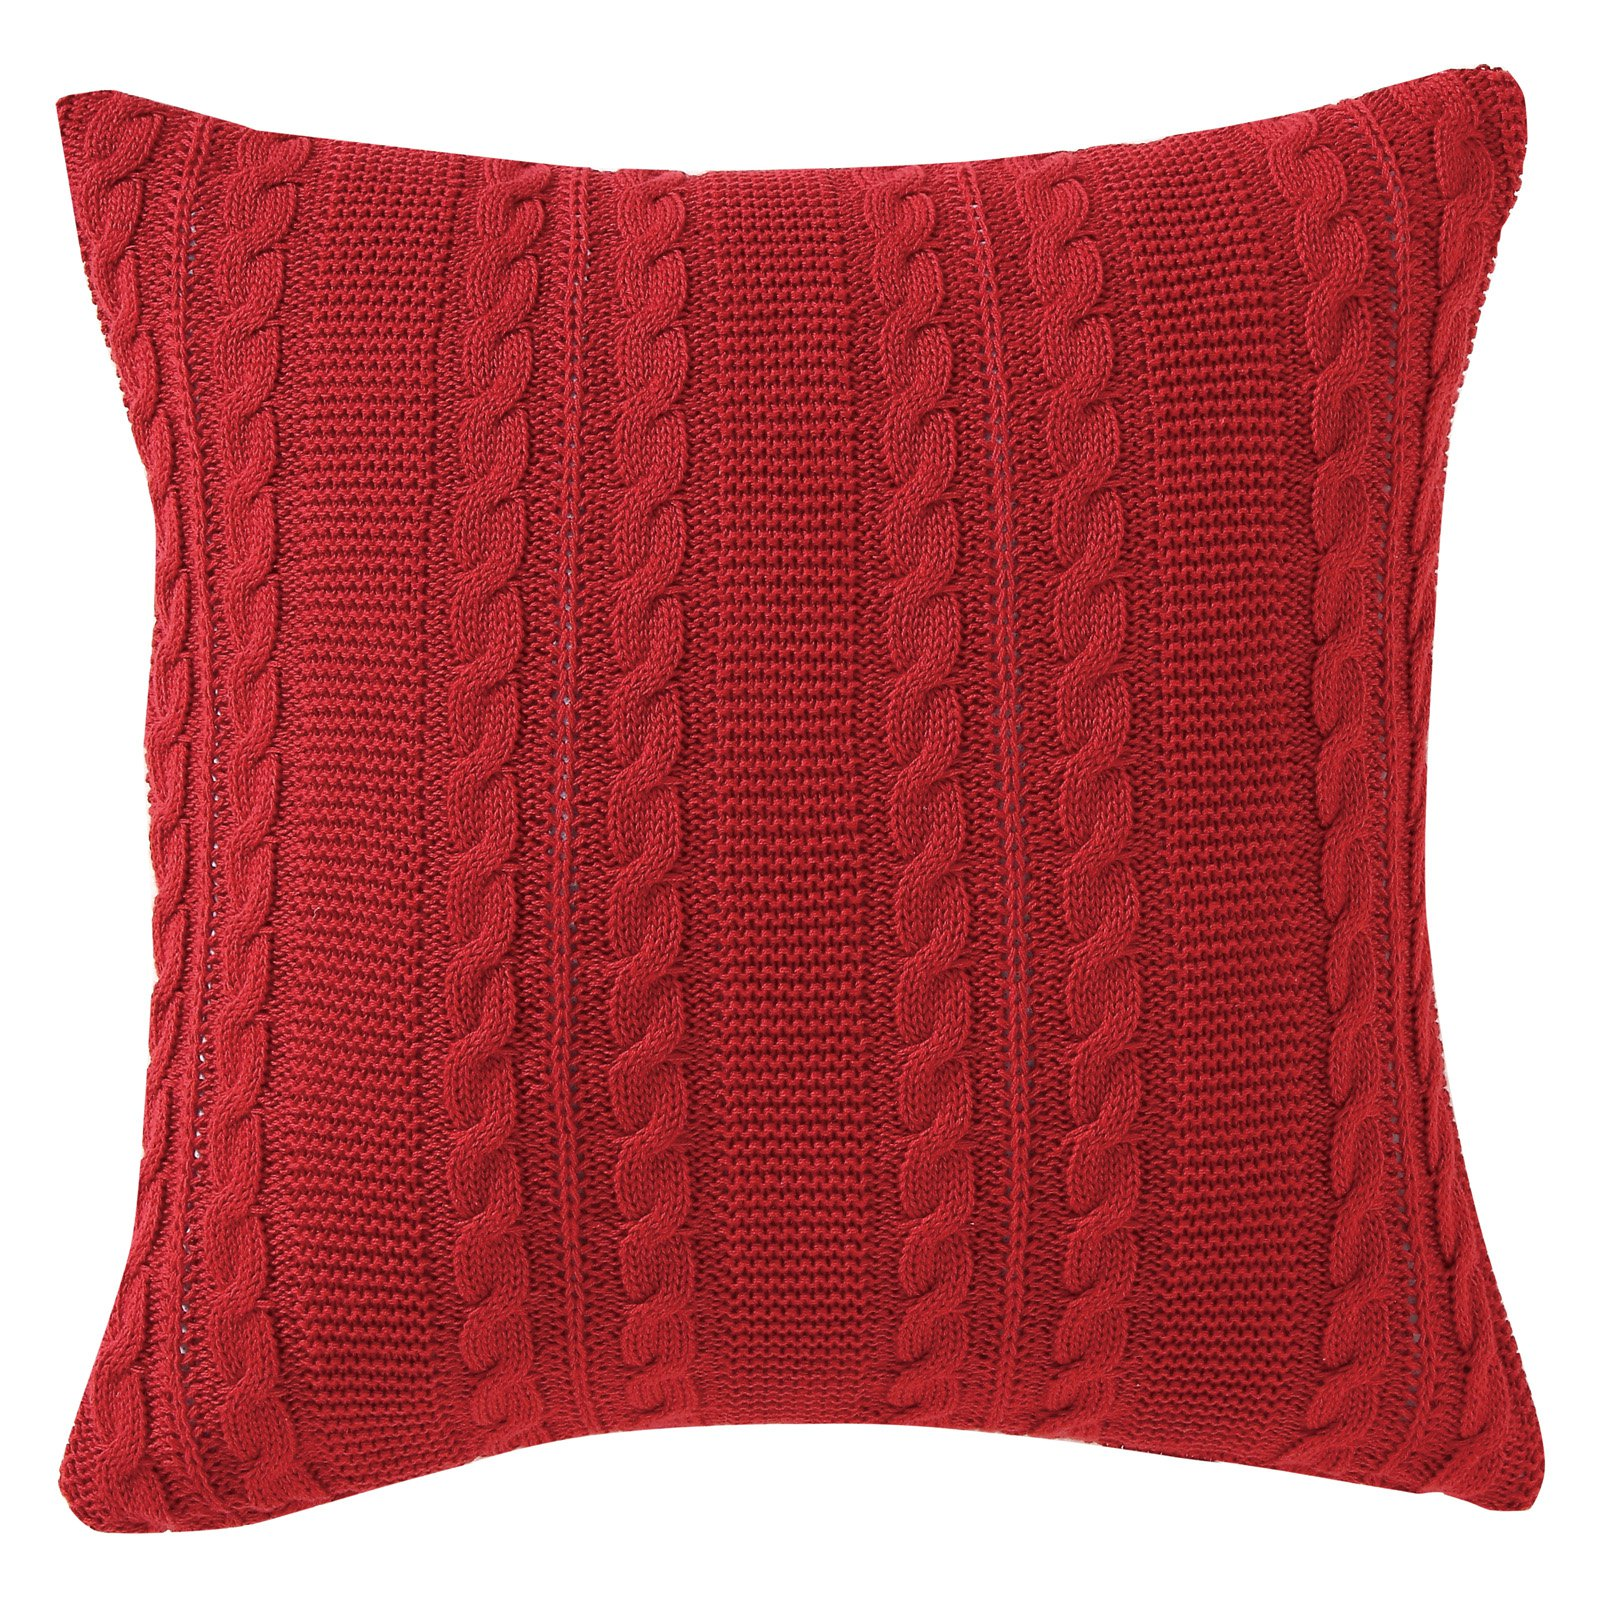 "VCNY Home Dublin Cable Knit Square Decorative Throw Pillow, 18"" x 18"", Navy Blue"